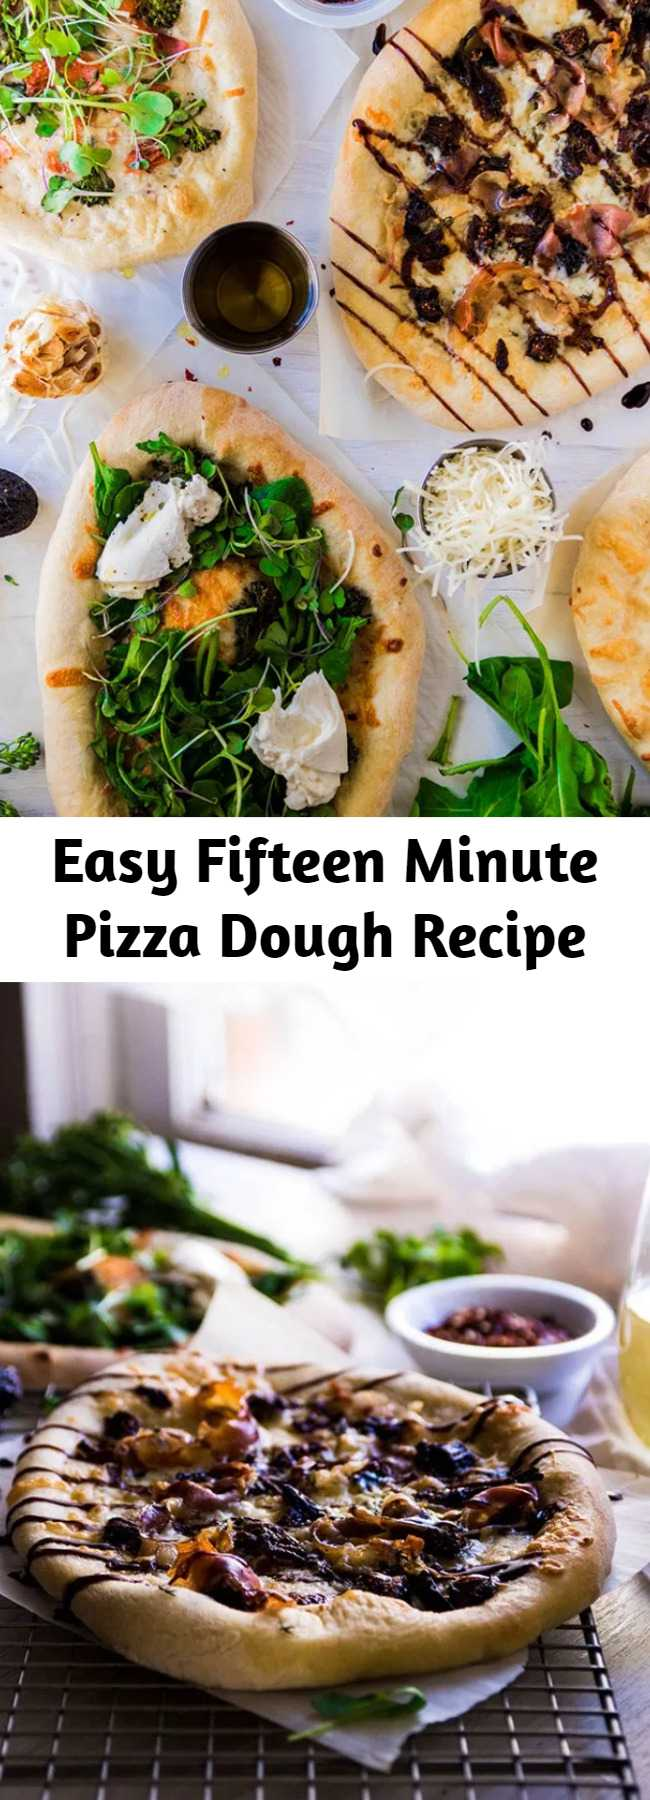 Easy Fifteen Minute Pizza Dough Recipe - This easy pizza dough recipe is weeknight-friendly and ready to bake in just fifteen minutes. The perfect quick pizza dough for busy evenings. Vegan, vegetarian.